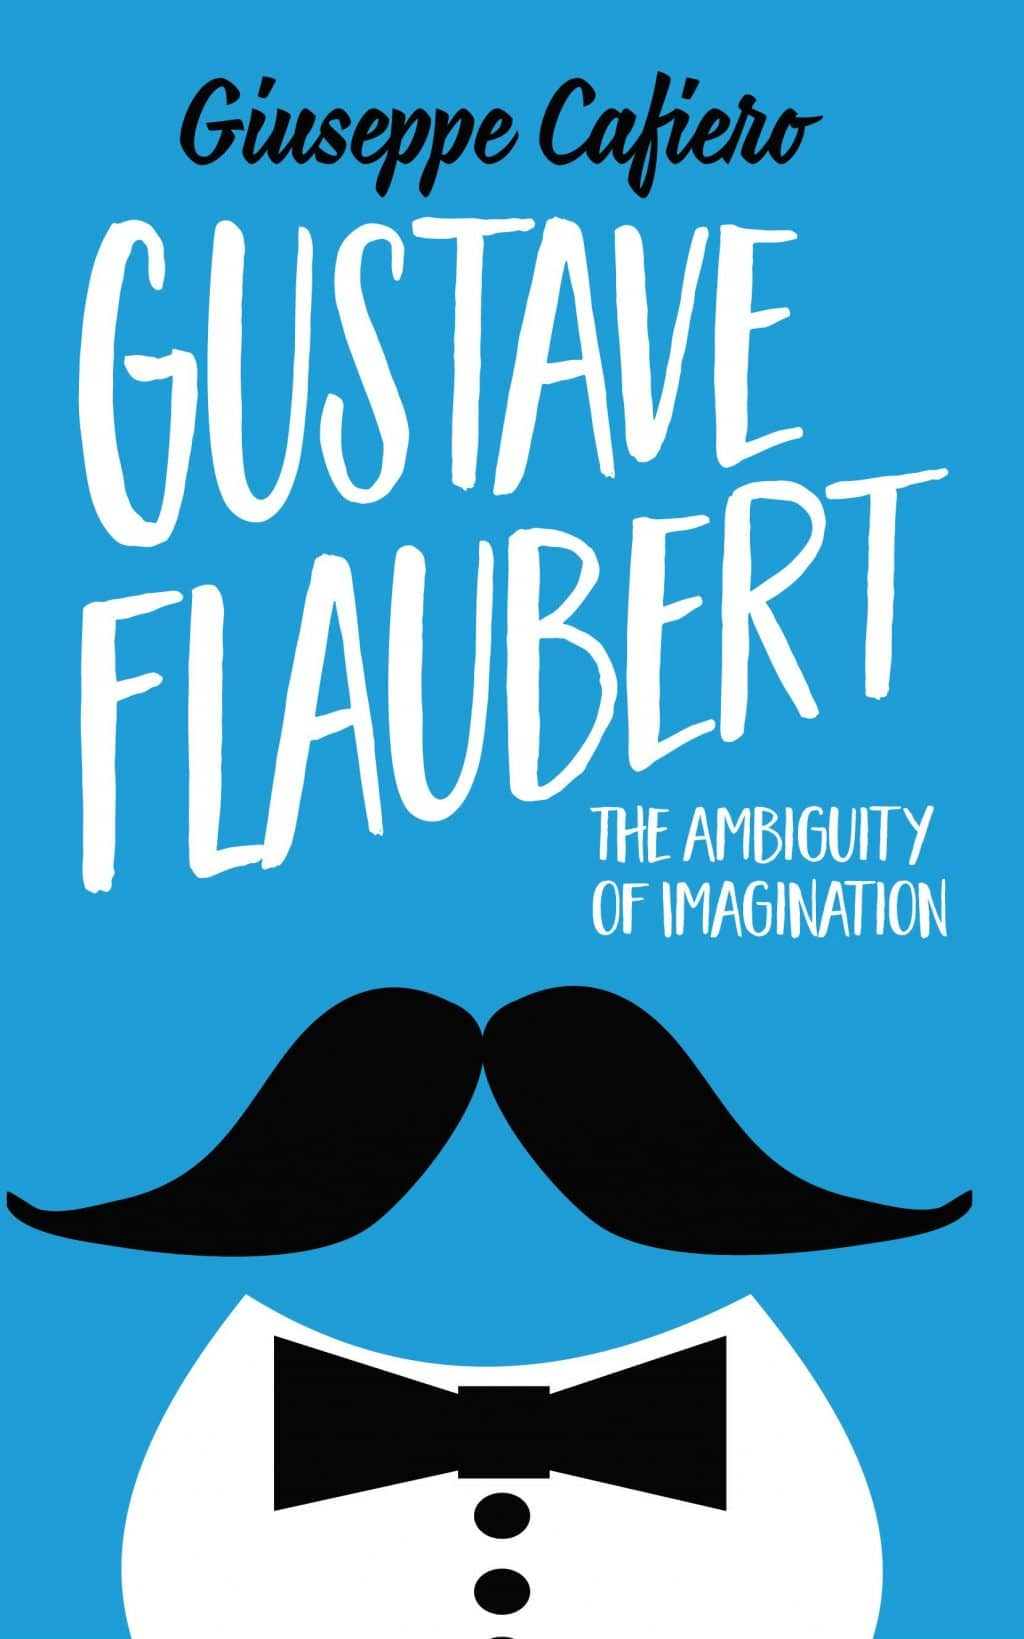 Gustave Flaubert Cover